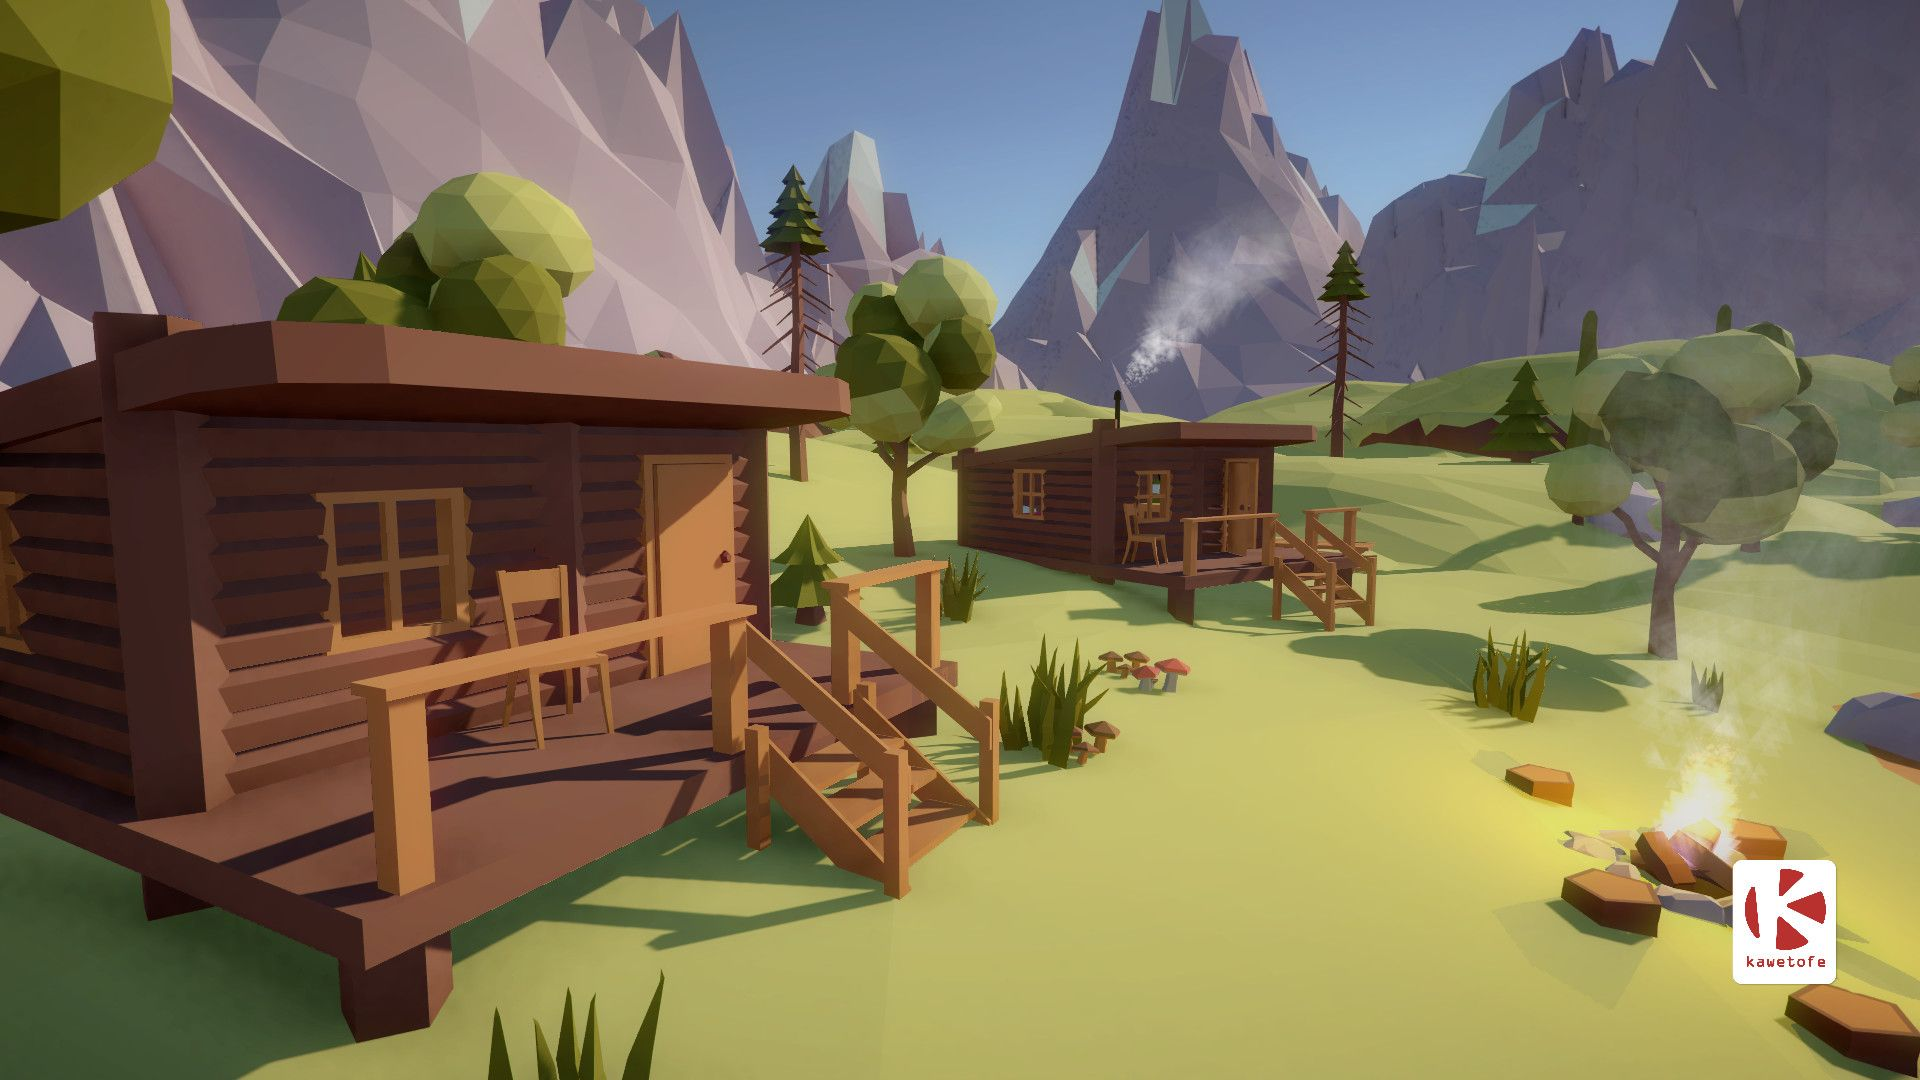 Screenshots of my current unity AssetStore project